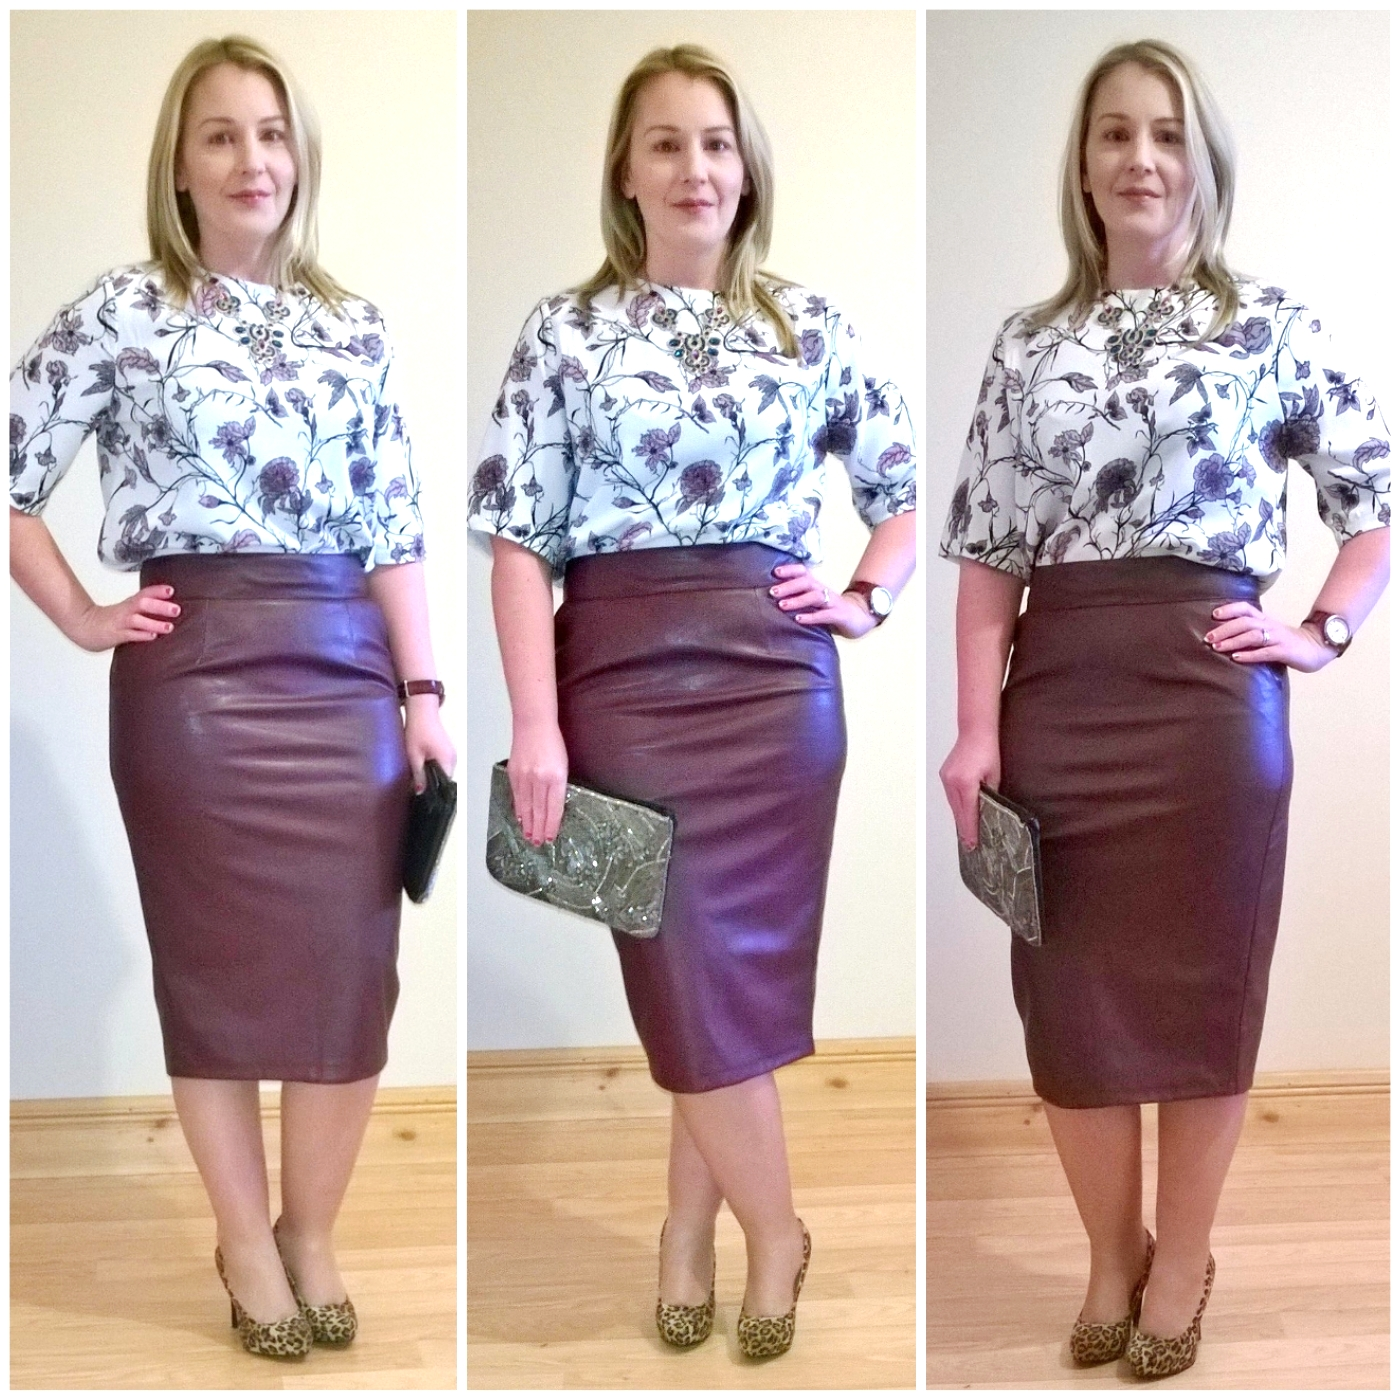 FRIDAY STYLE: THE LEATHER PENCIL SKIRT | Ah Sure Tis Lovely